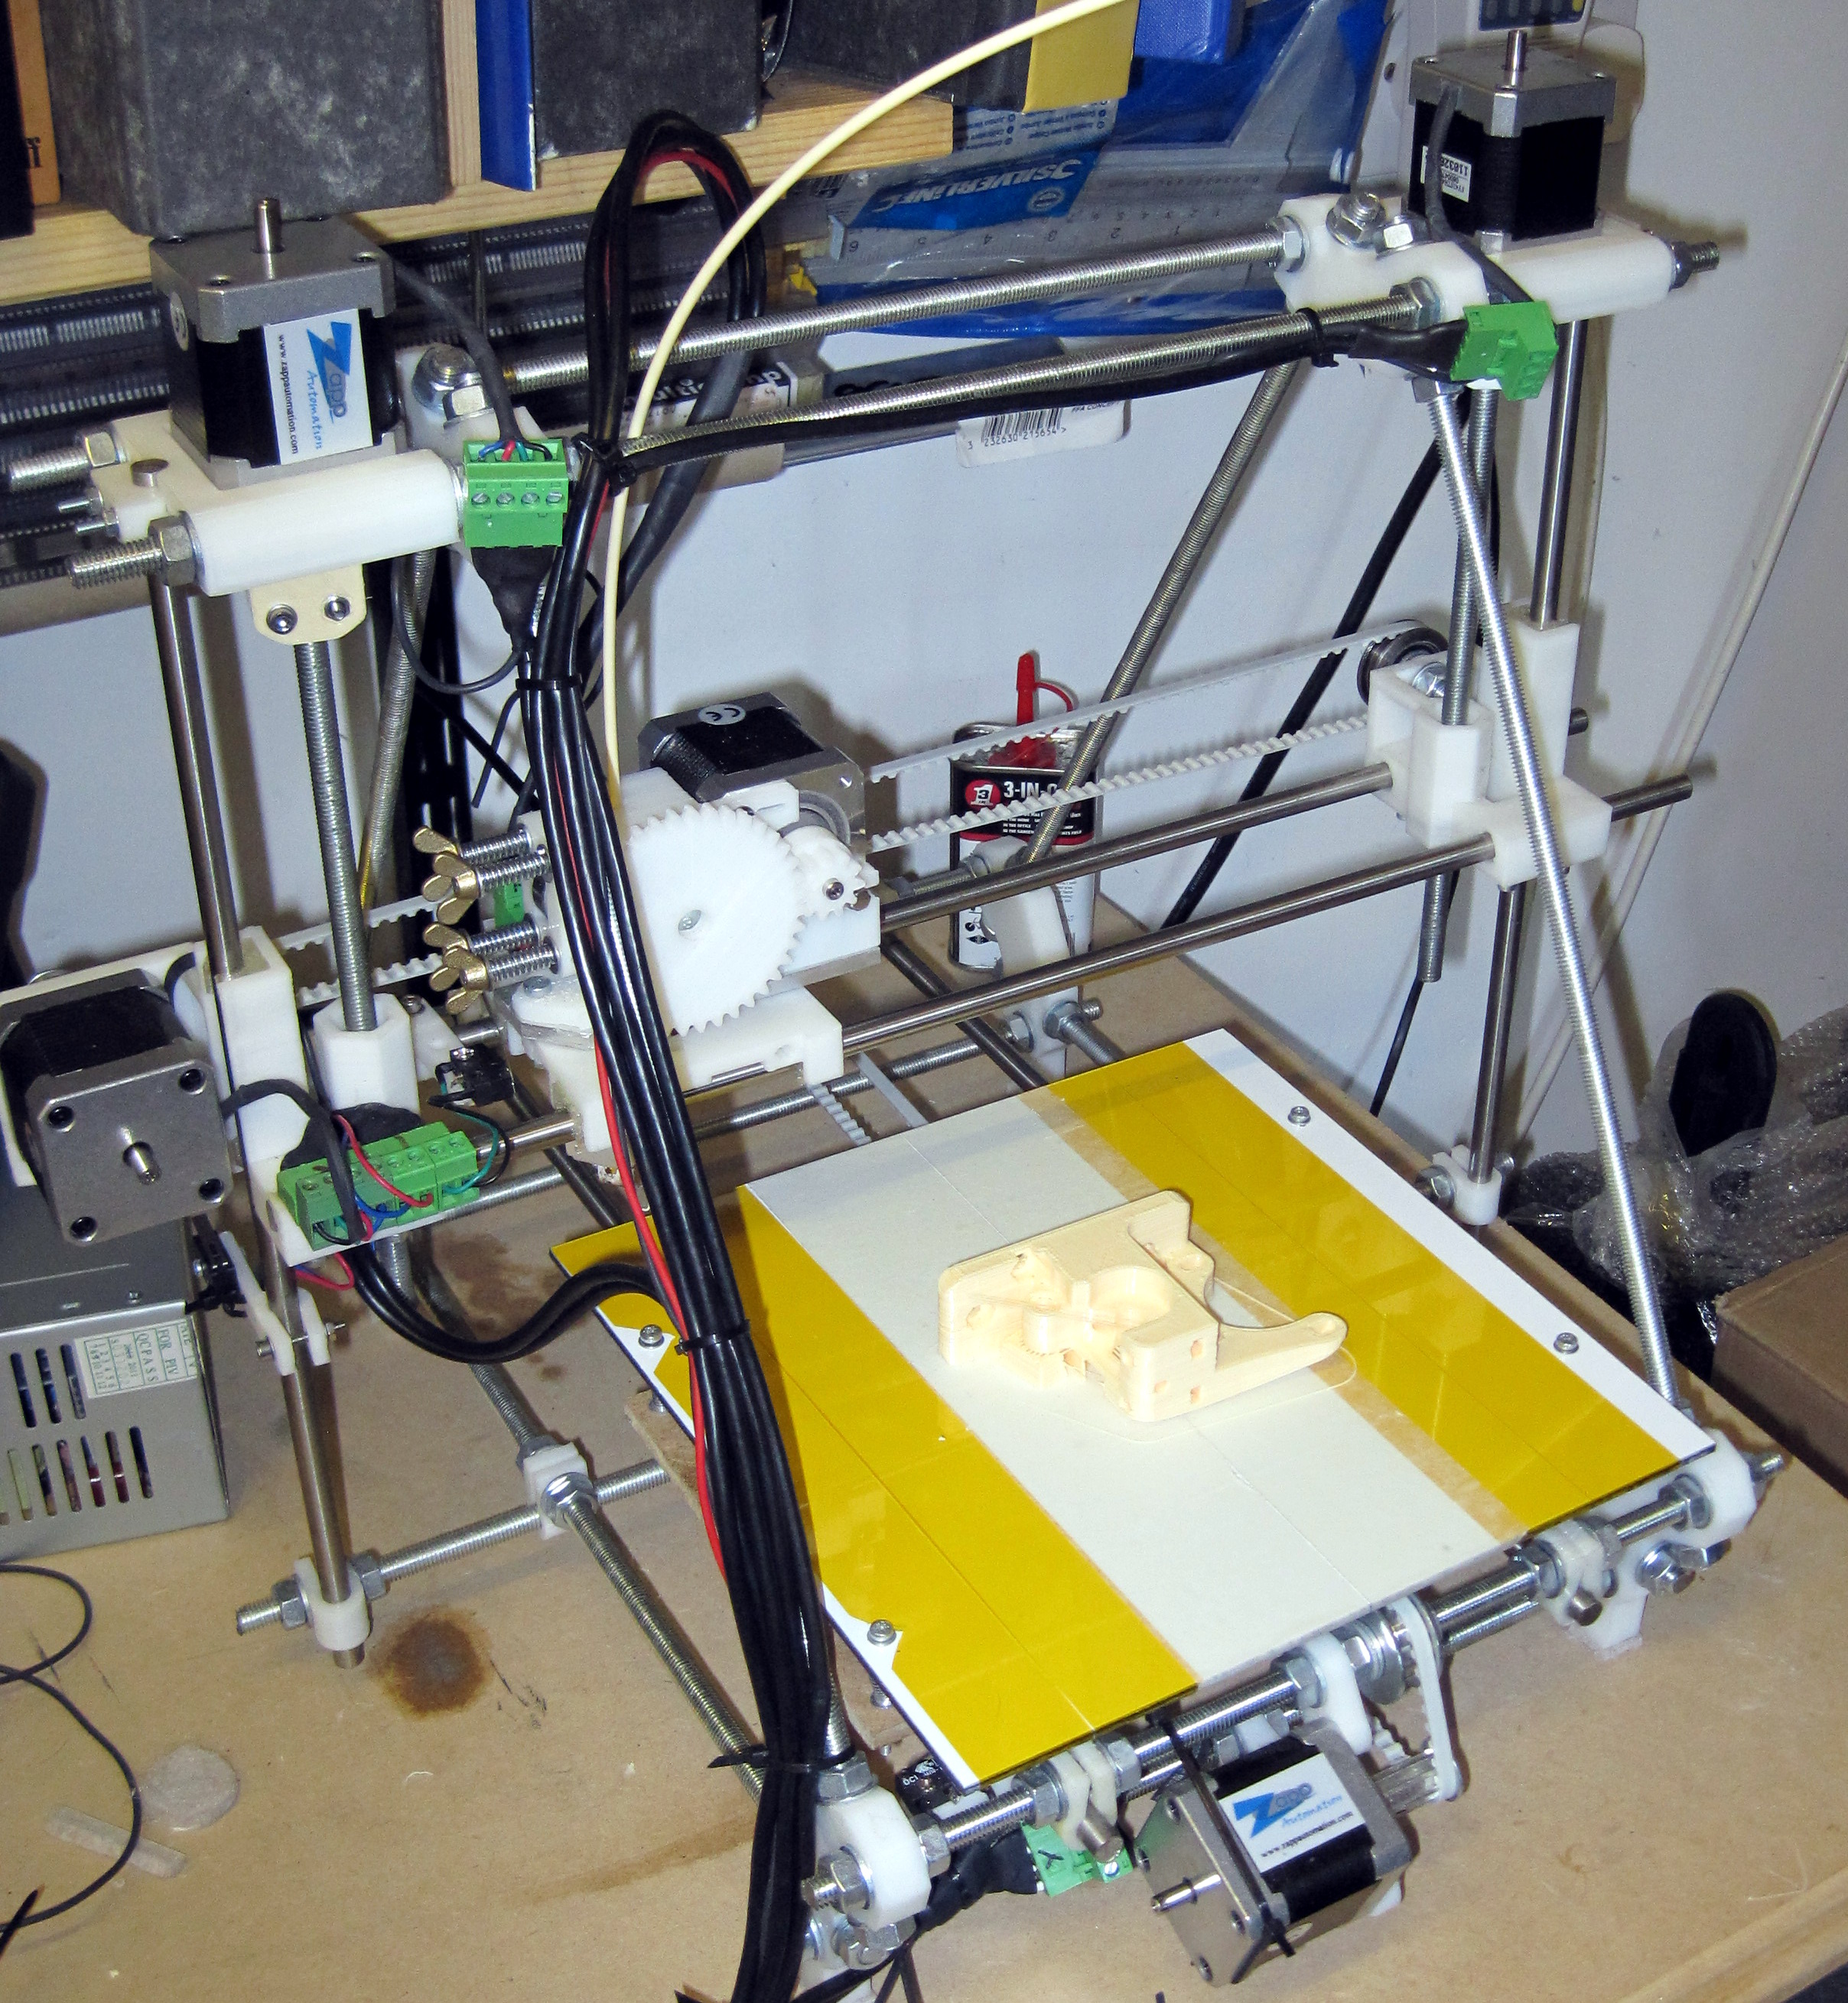 My Prusa Reprap printer, not recommended for new builds